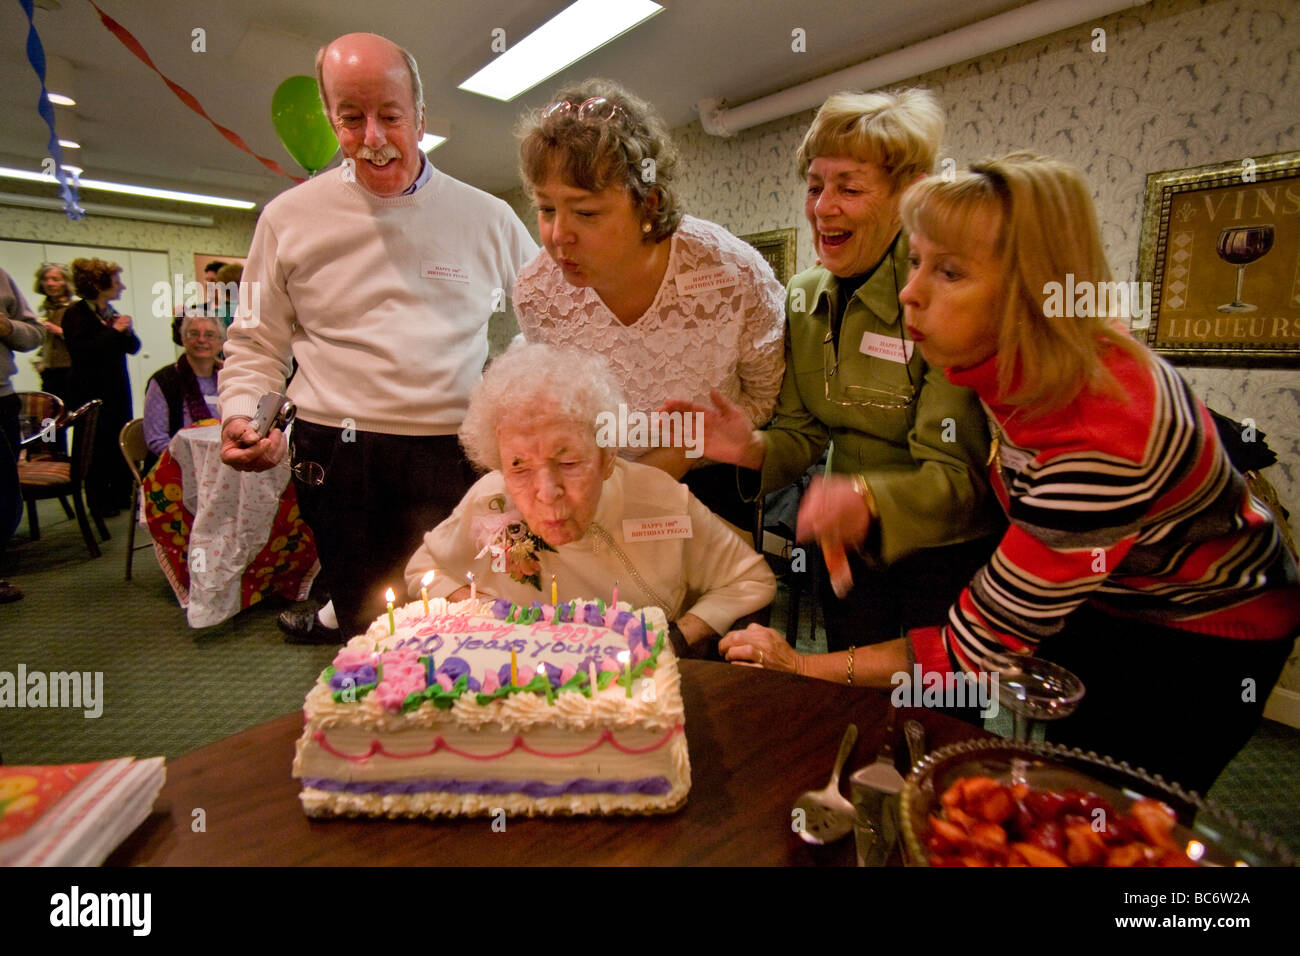 Assisted By Family And Friends A Centenarian Blows Out The Candles On Her Cake During